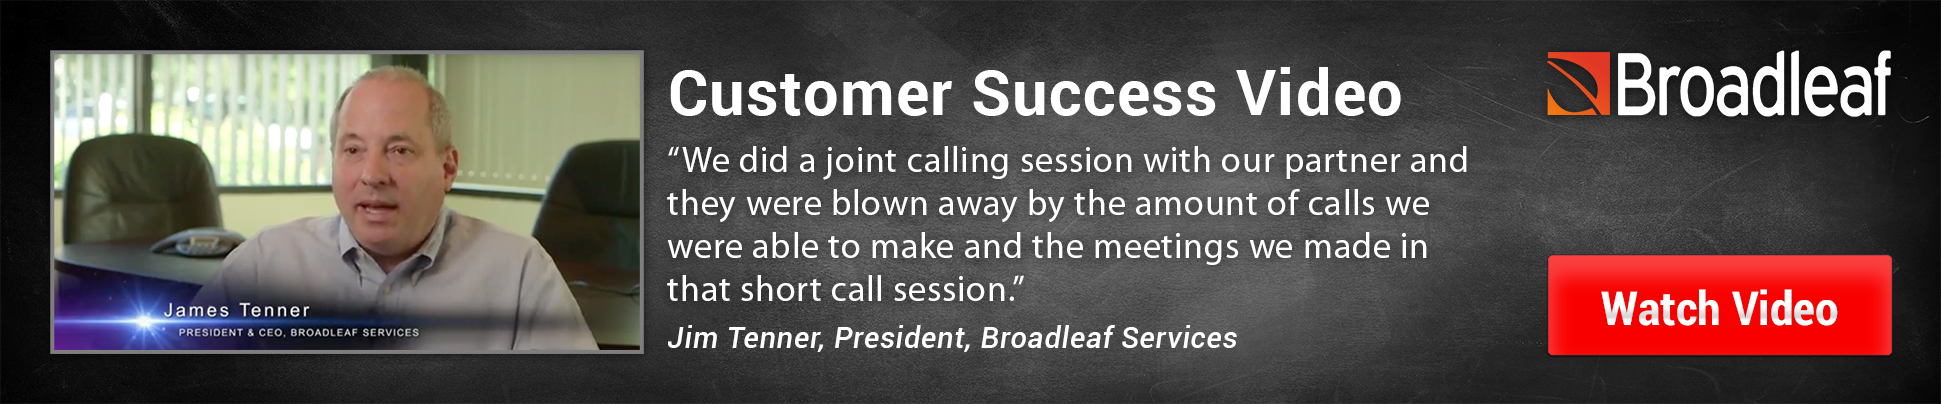 Customer Success Video